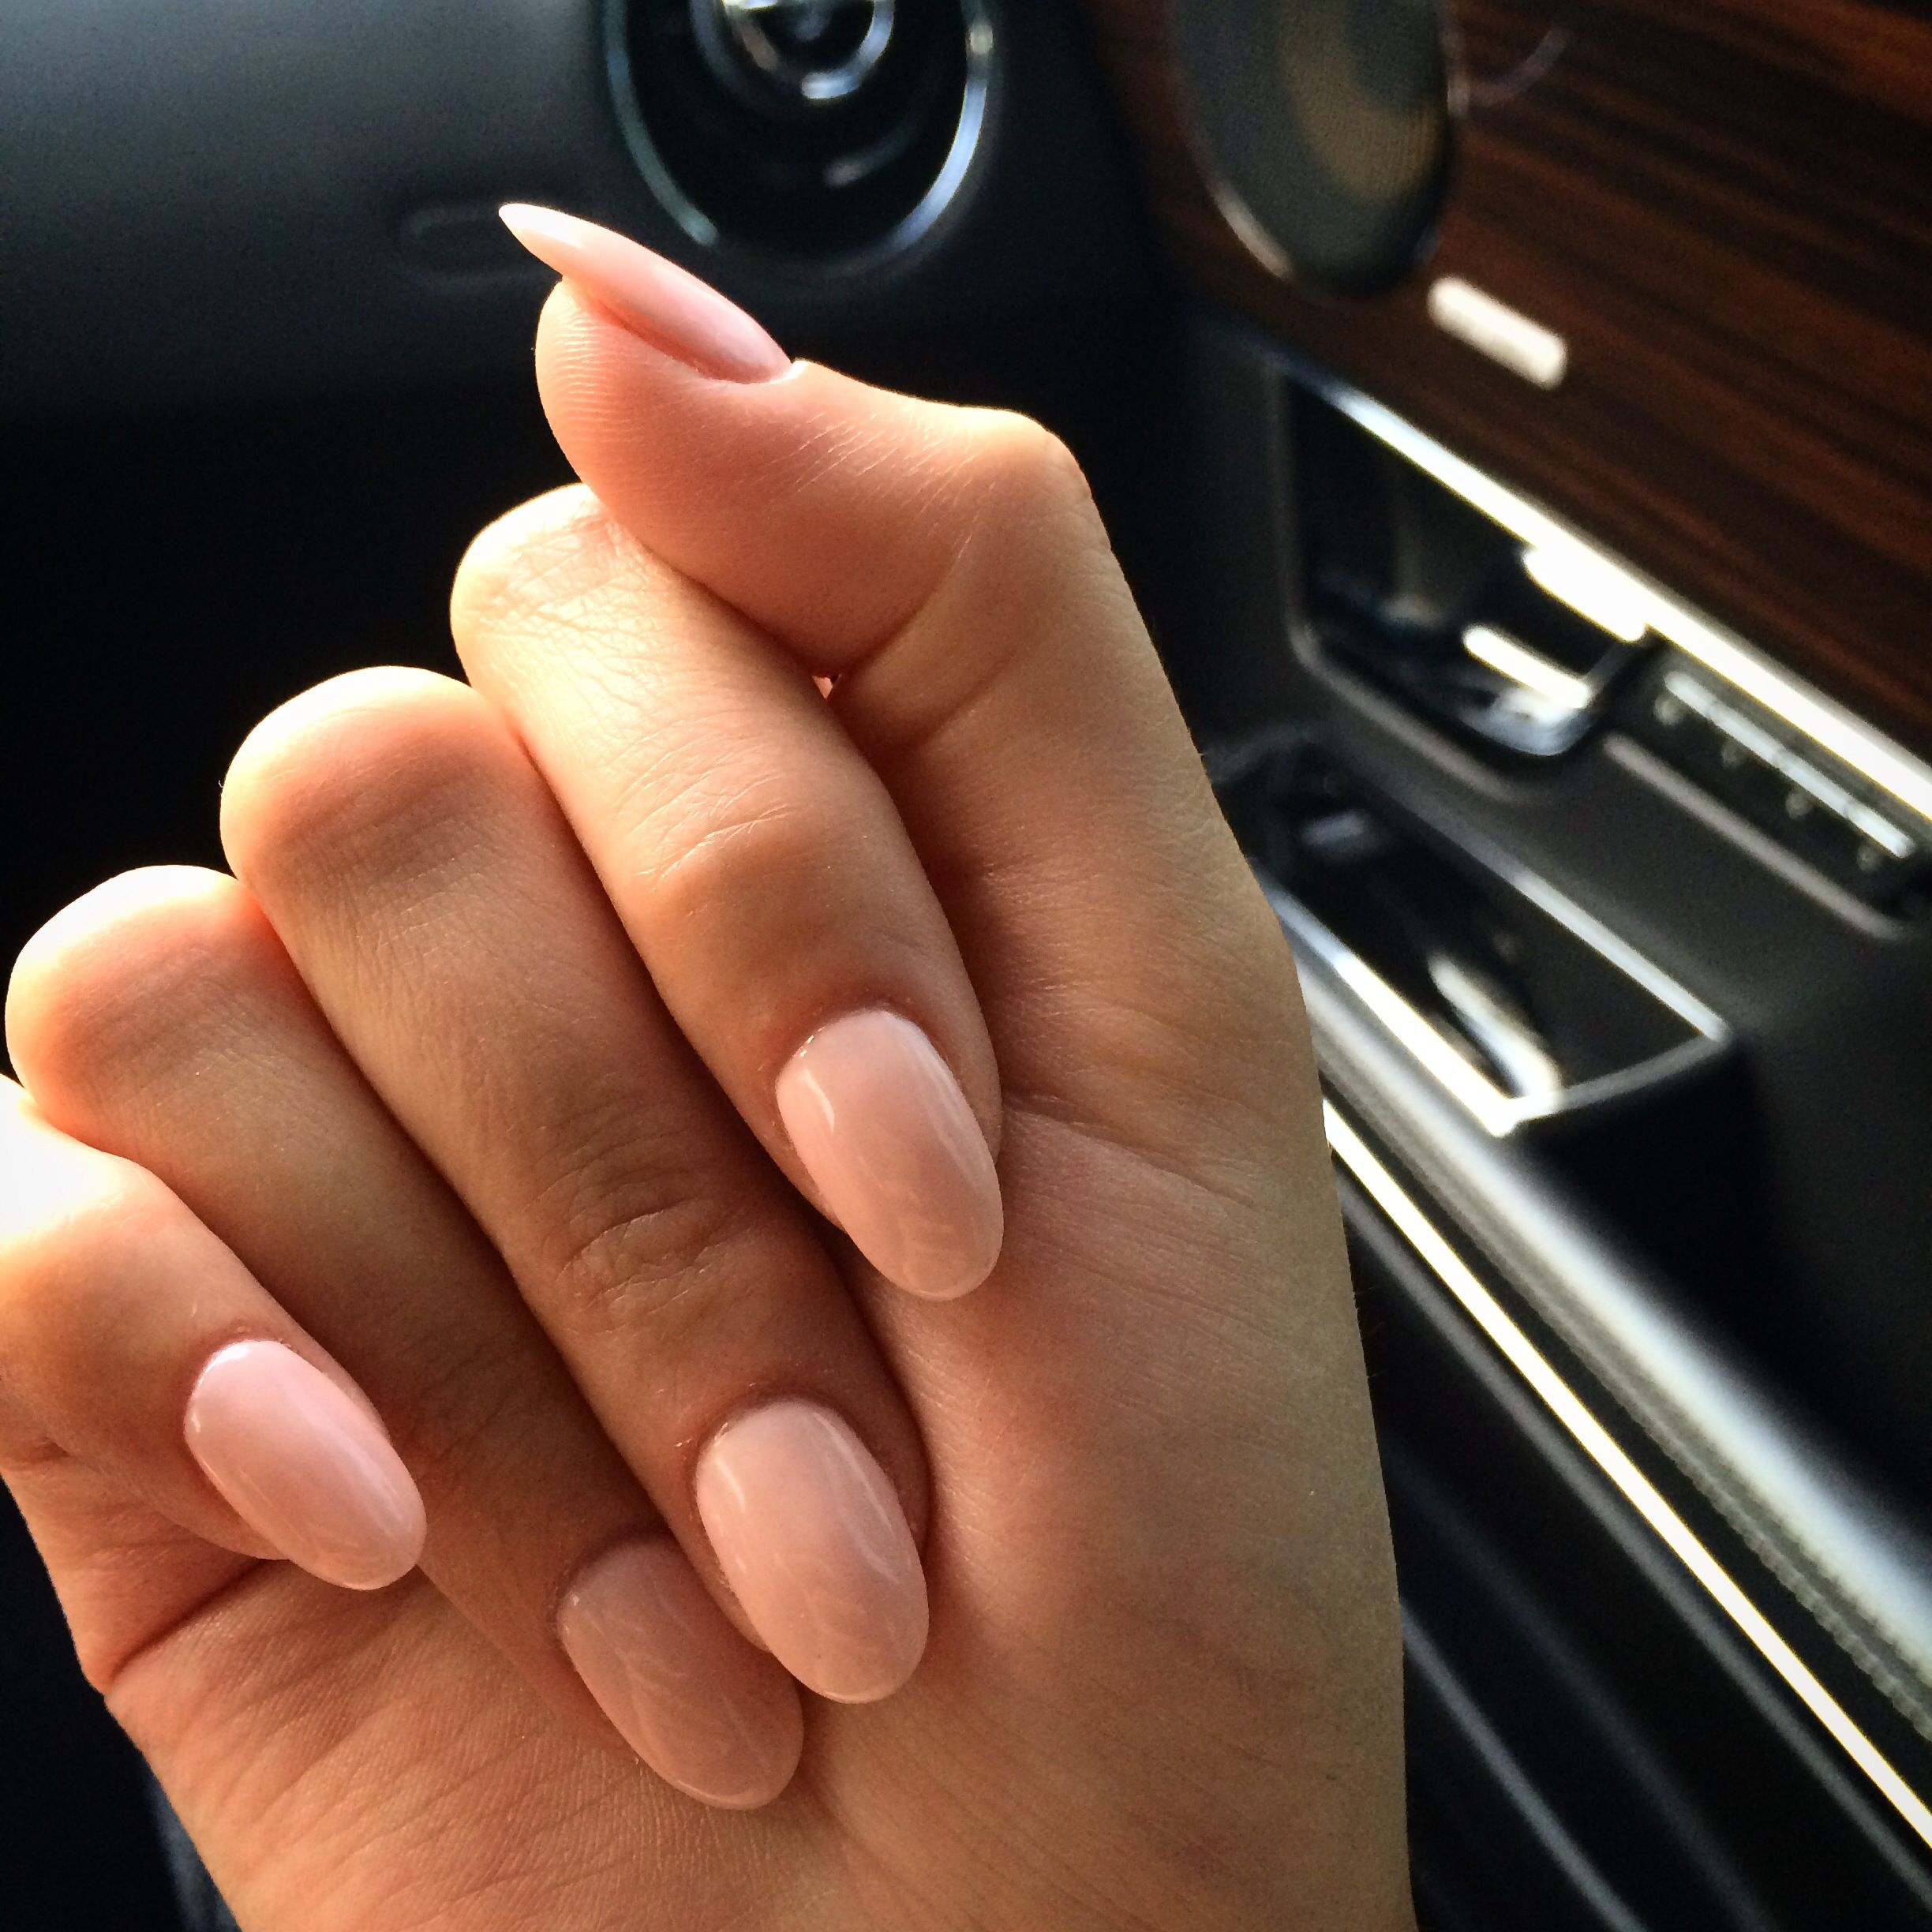 Want Simple Ones Like These For The First Time Getting My Nails Done Pink Oval Nails Nails Mermaid Nails